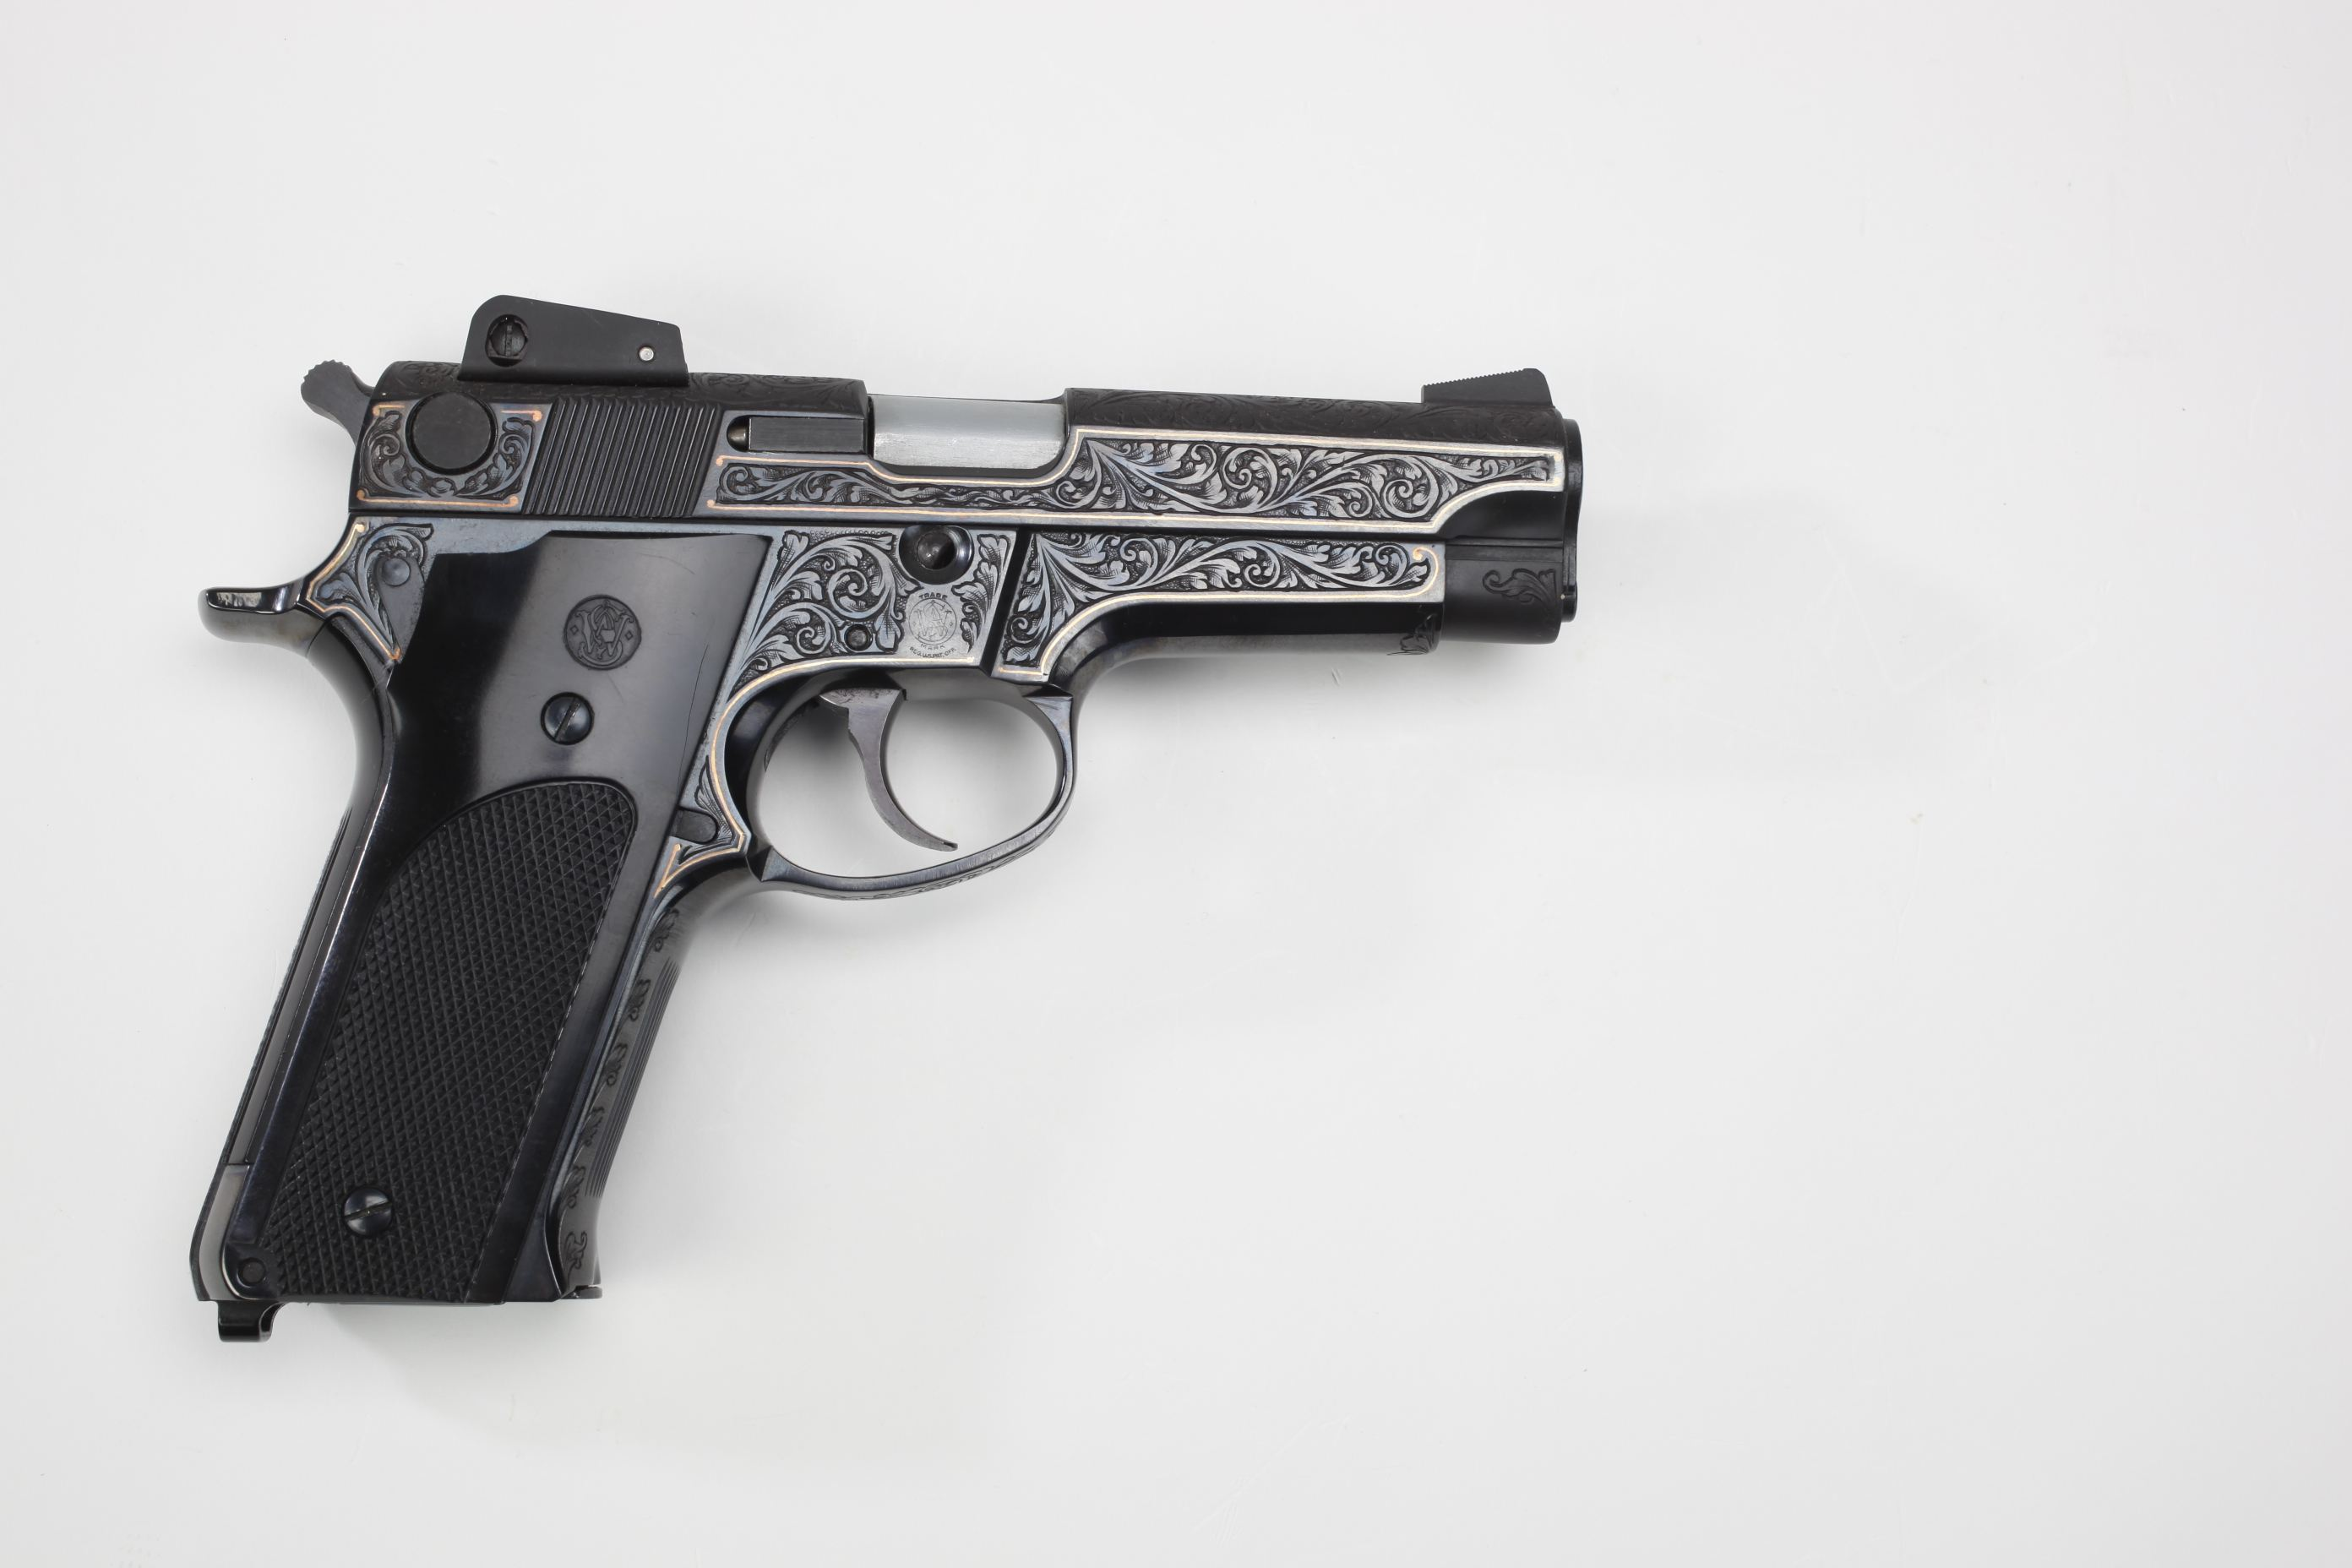 Smith & Wesson (Springfield, MA) Model 559 Semi-Automatic Pistol